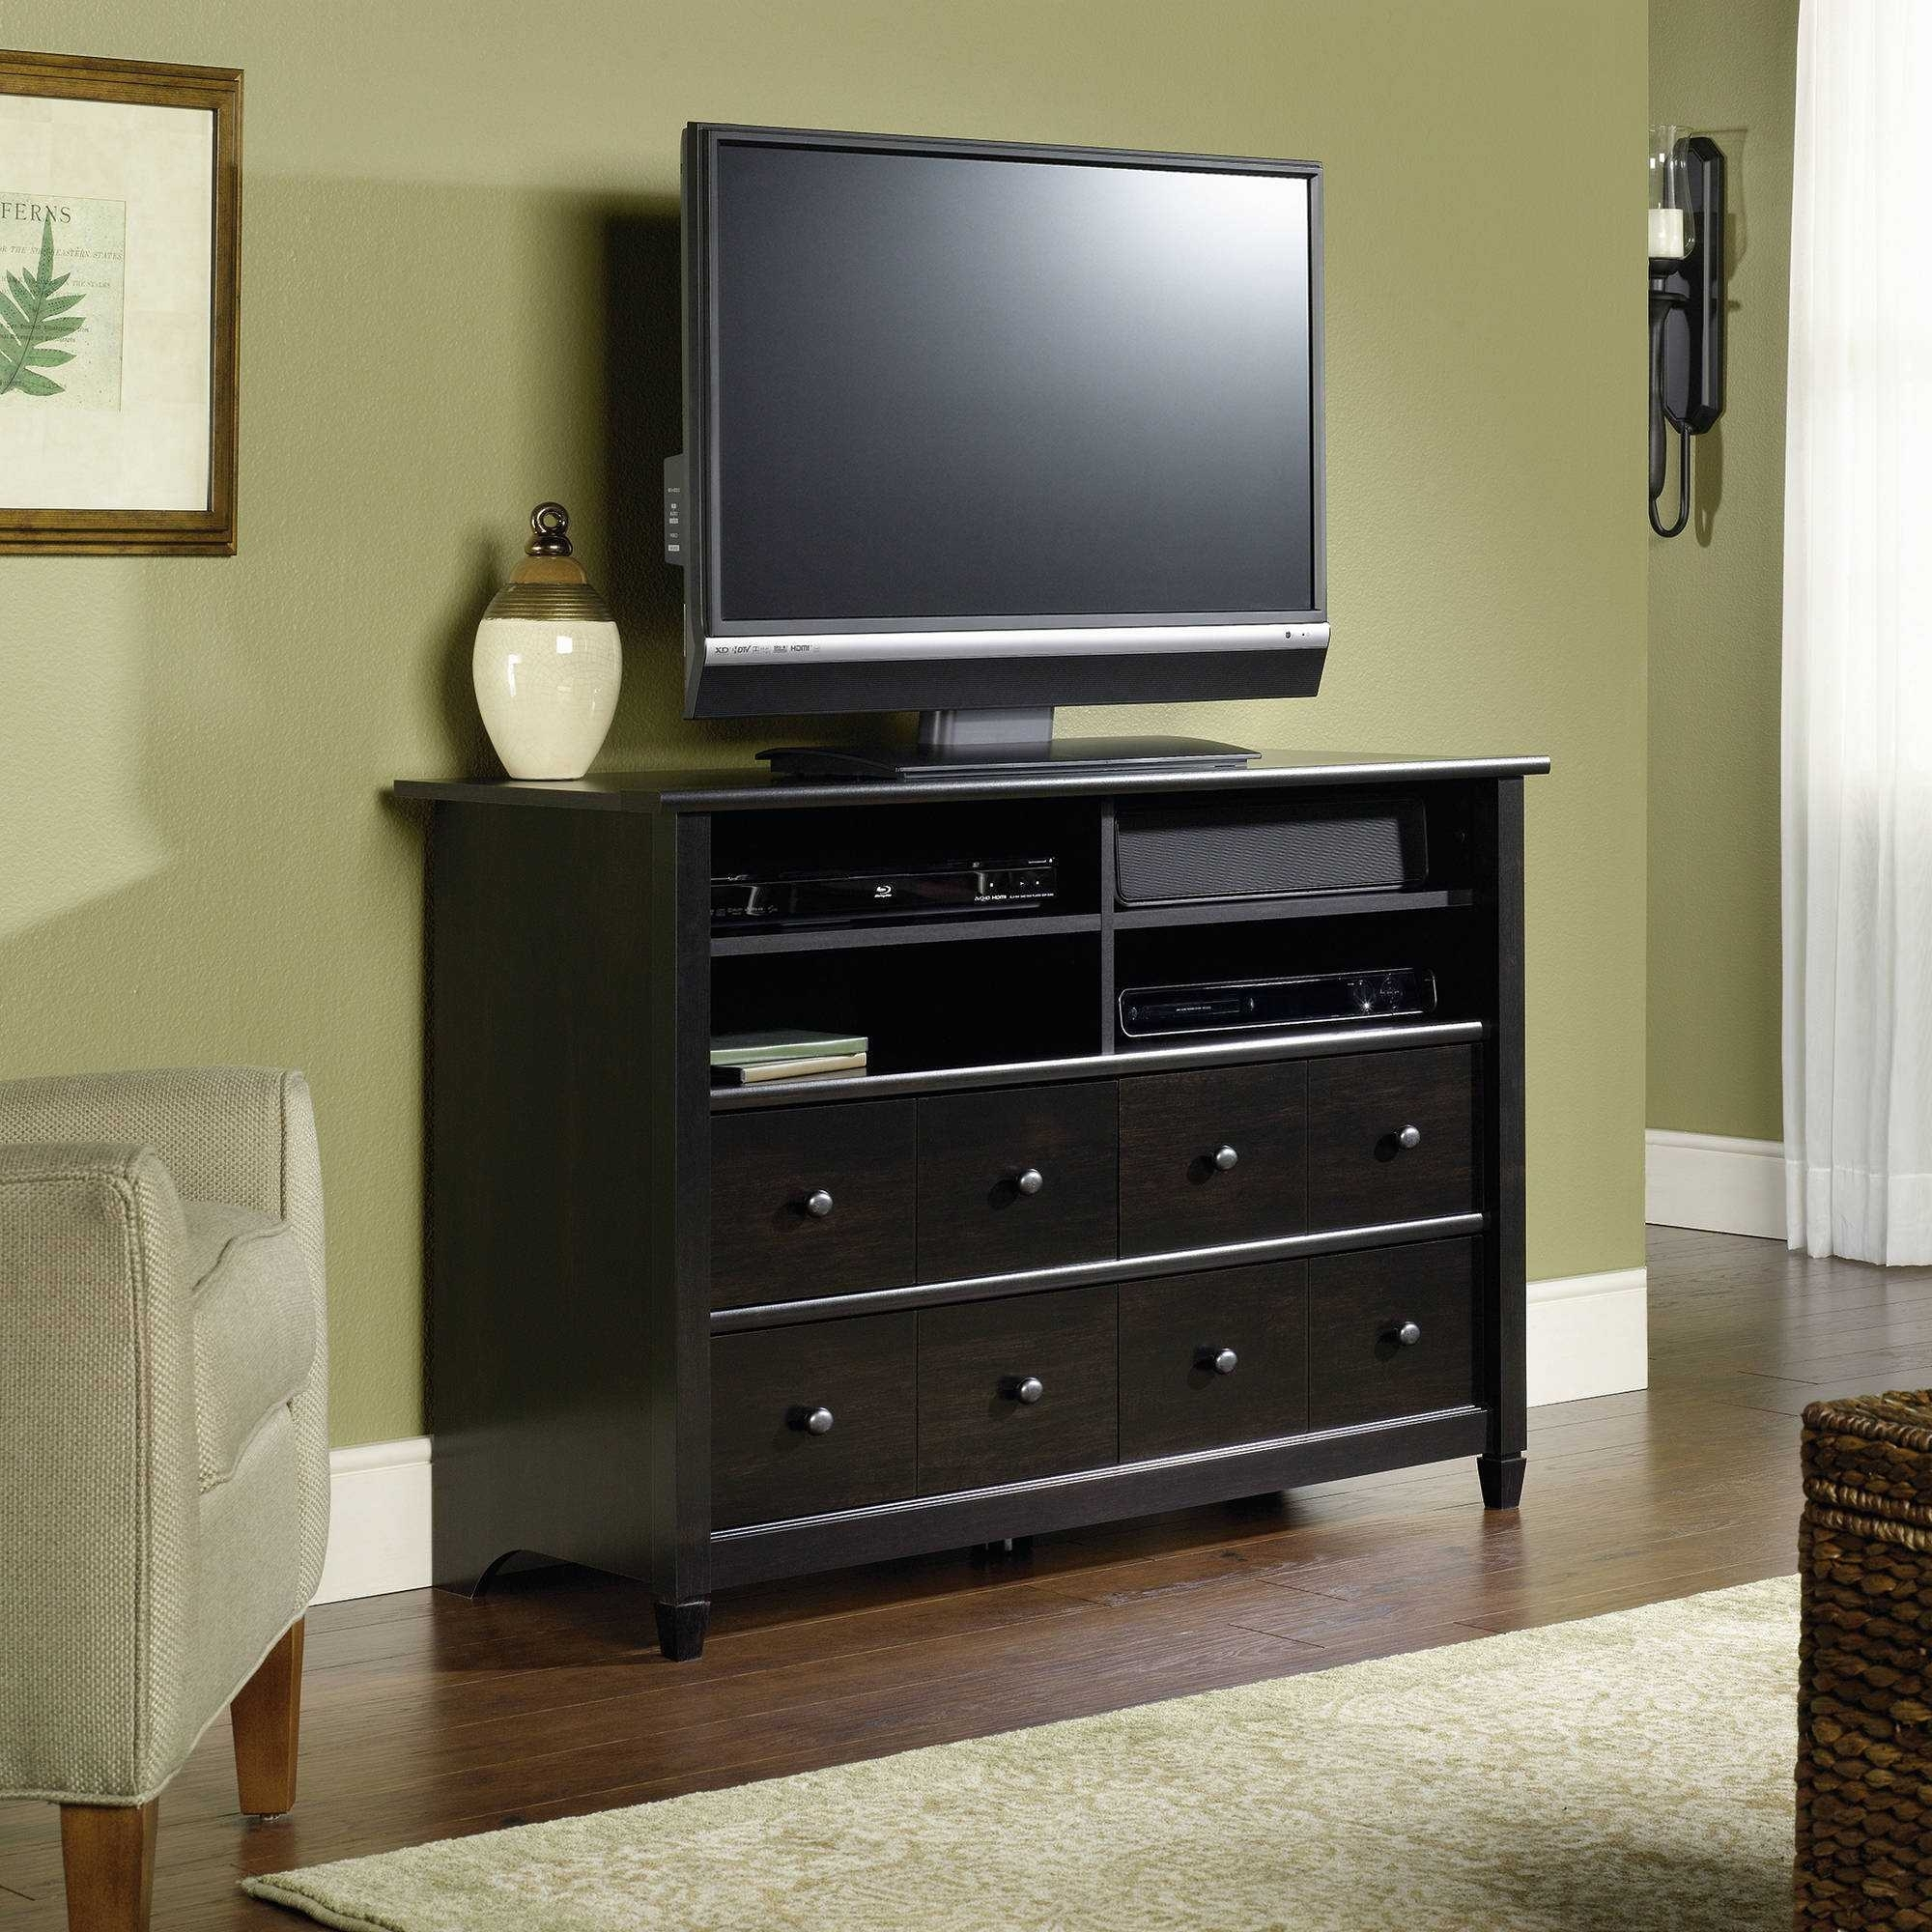 Amazing Dresser Tv Stand Ikea : The Creative Room Design Throughout Tv Stands At Ikea (View 7 of 15)